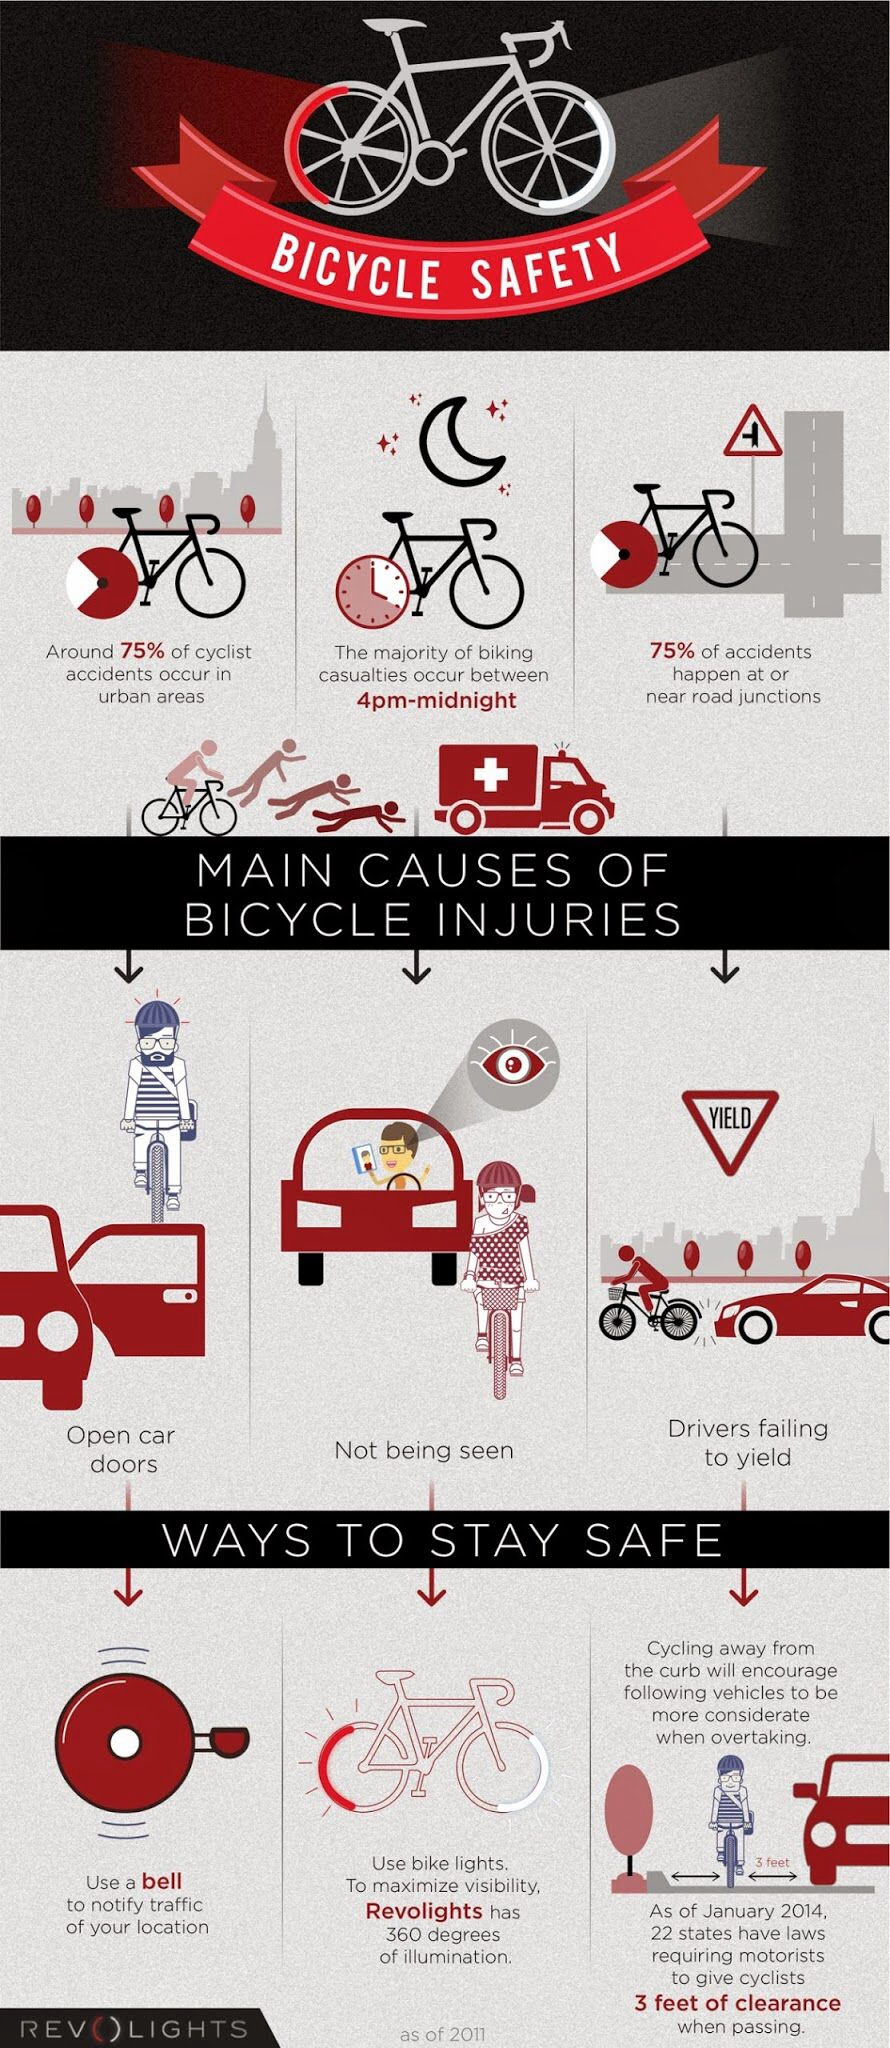 Main causes cycling injuries. THECYCLINGBUG.CO.UK